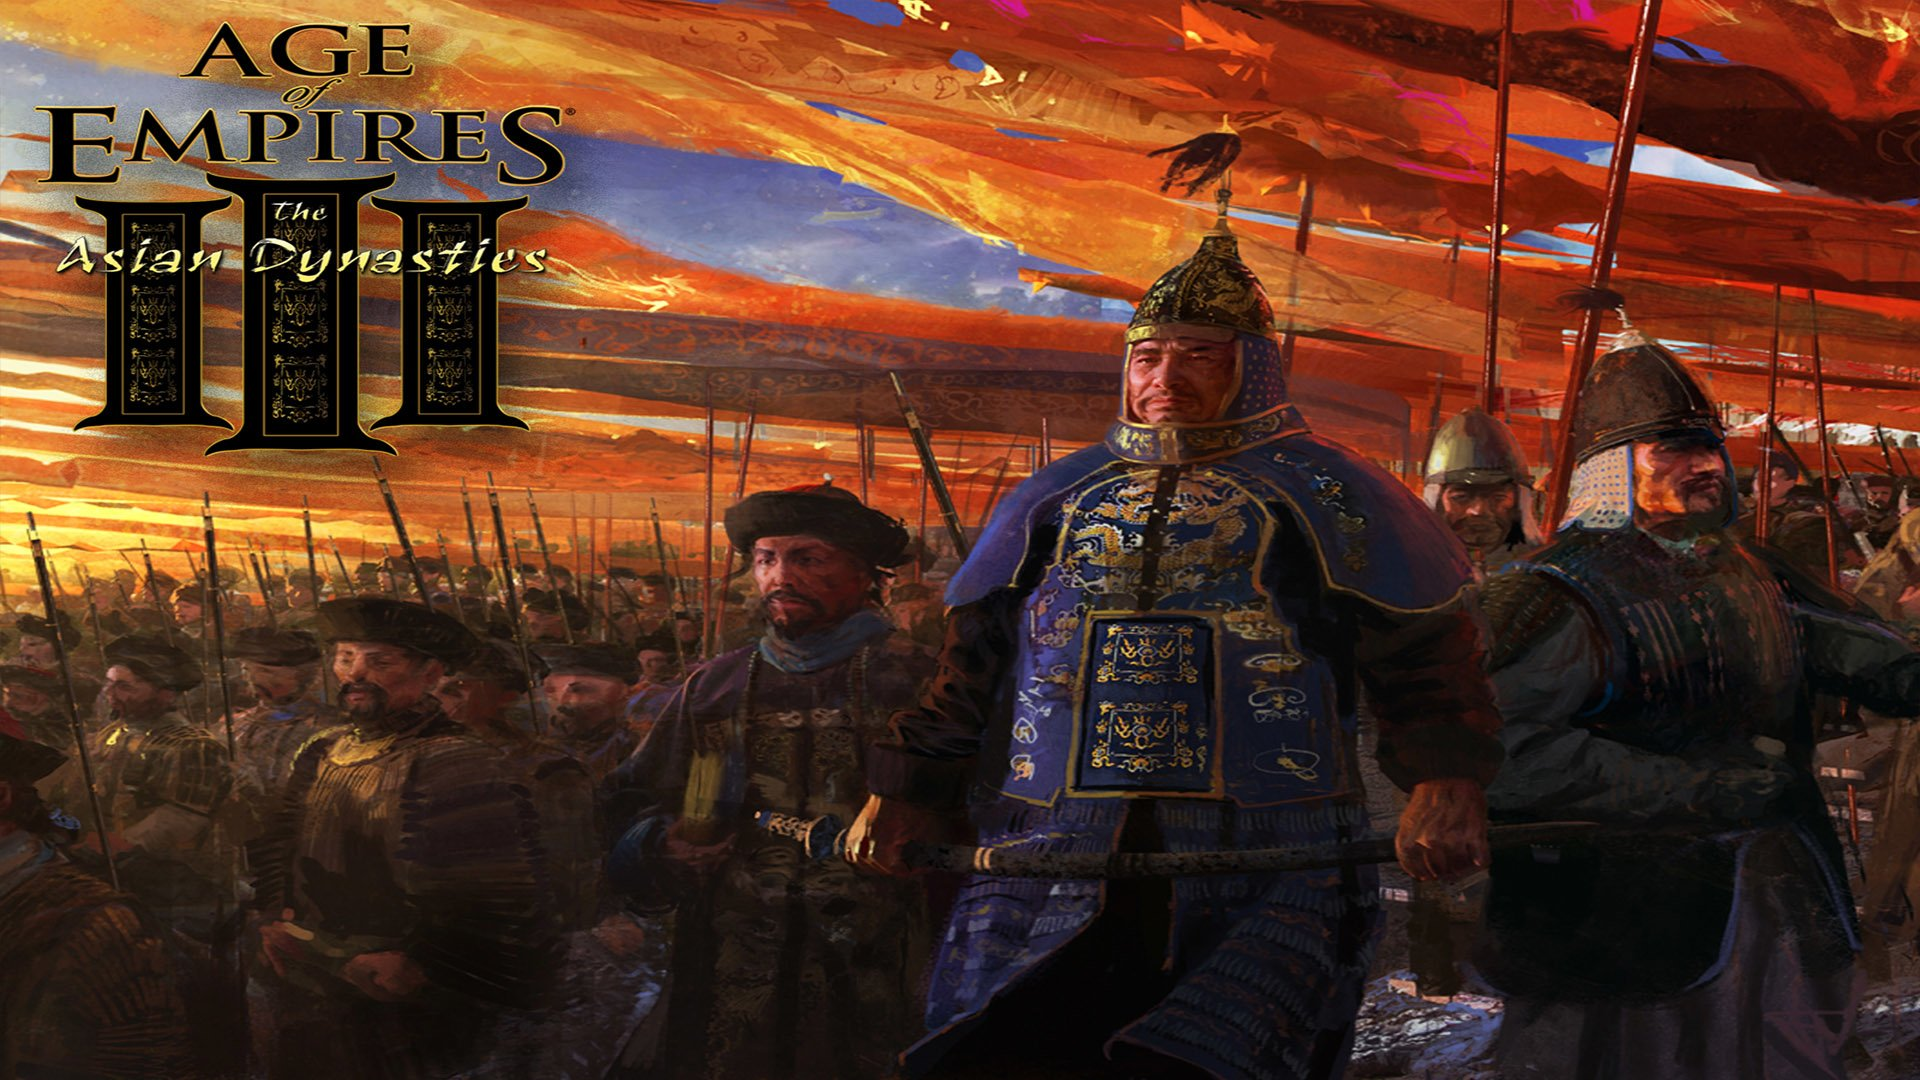 Age of Empires III: The Asian Dynasties Free Download for